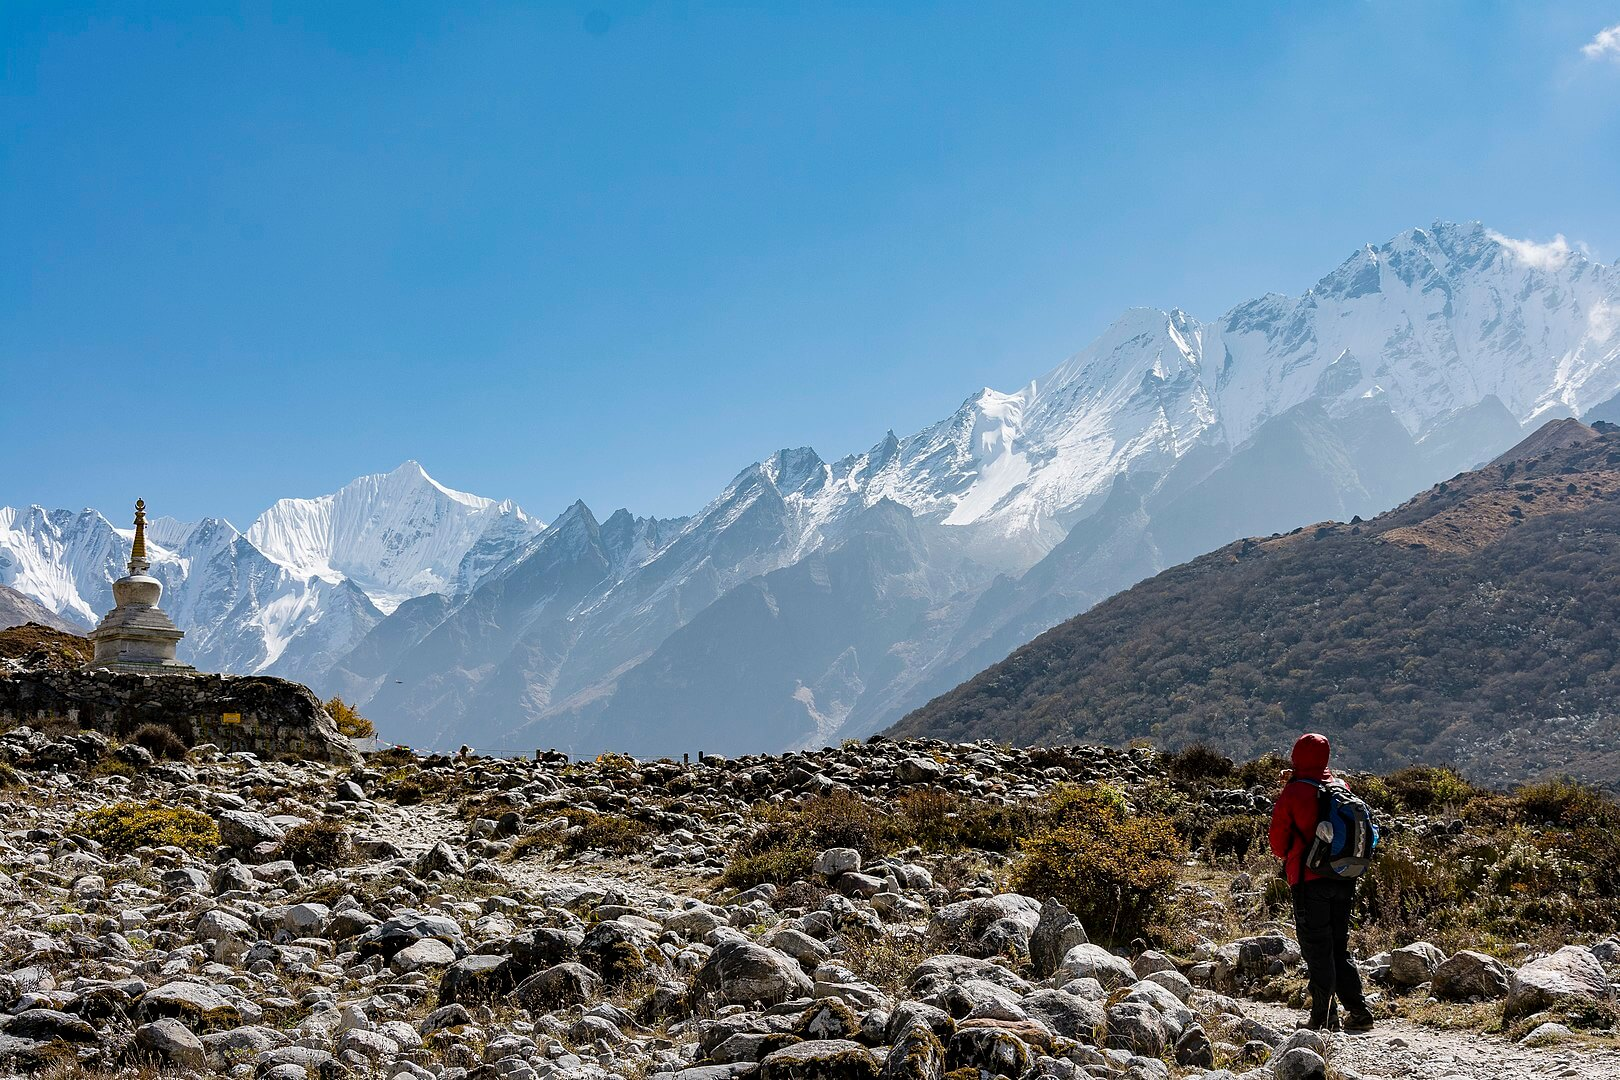 Langtang Valley Trek Permit